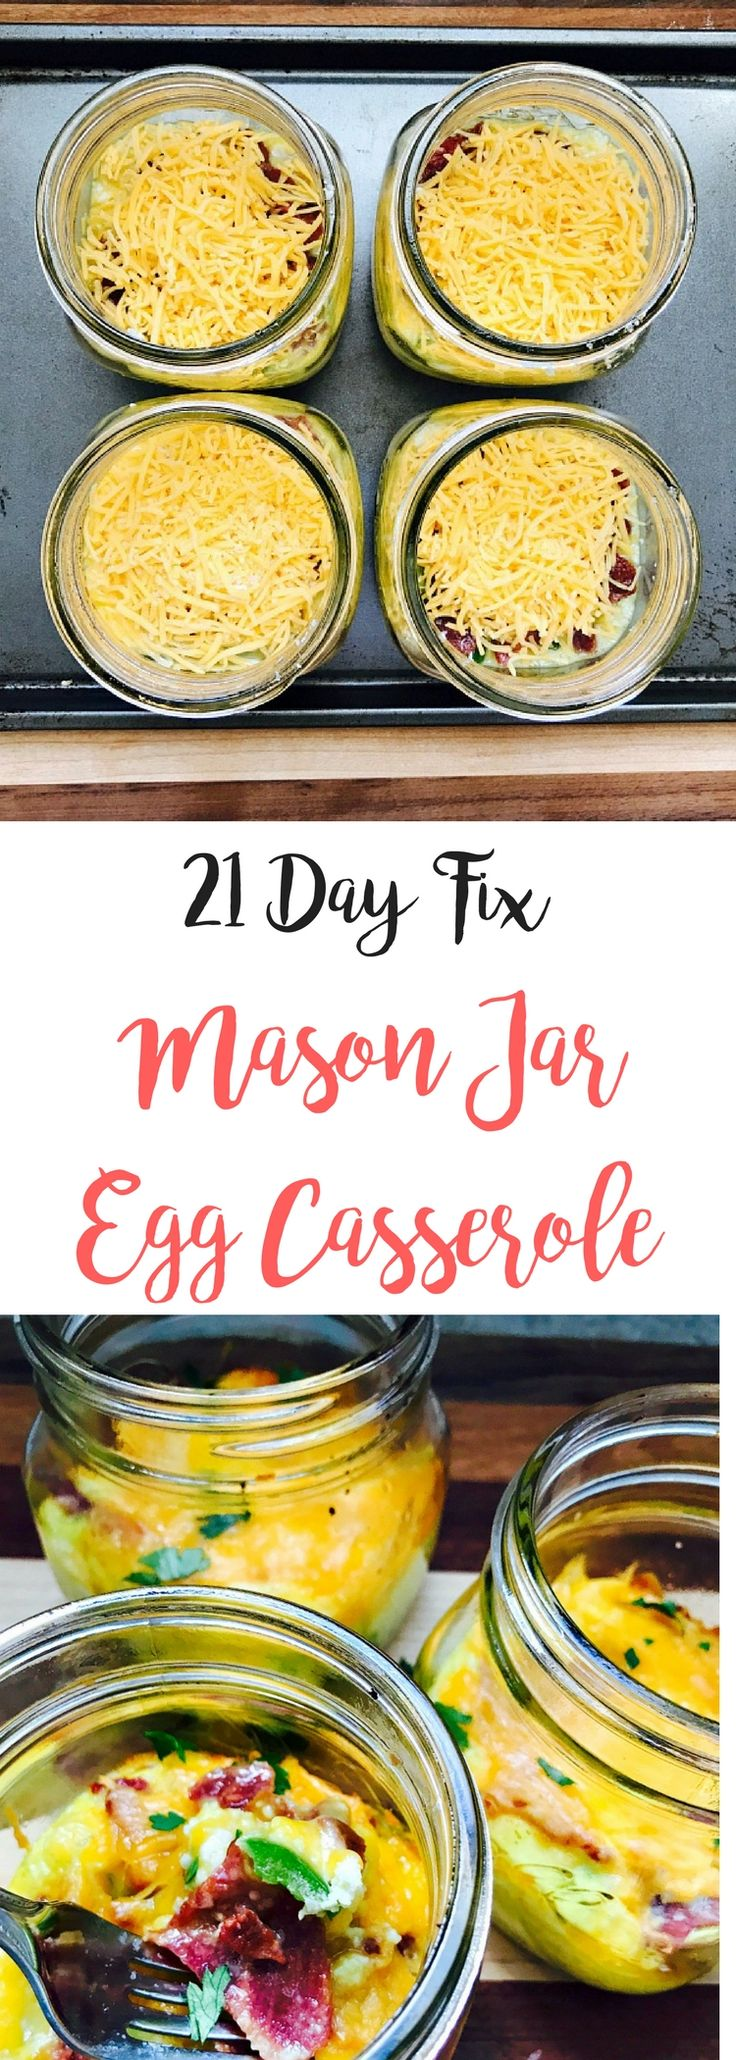 21 Day Fix Egg Casserole | Confessions of a Fit Foodie